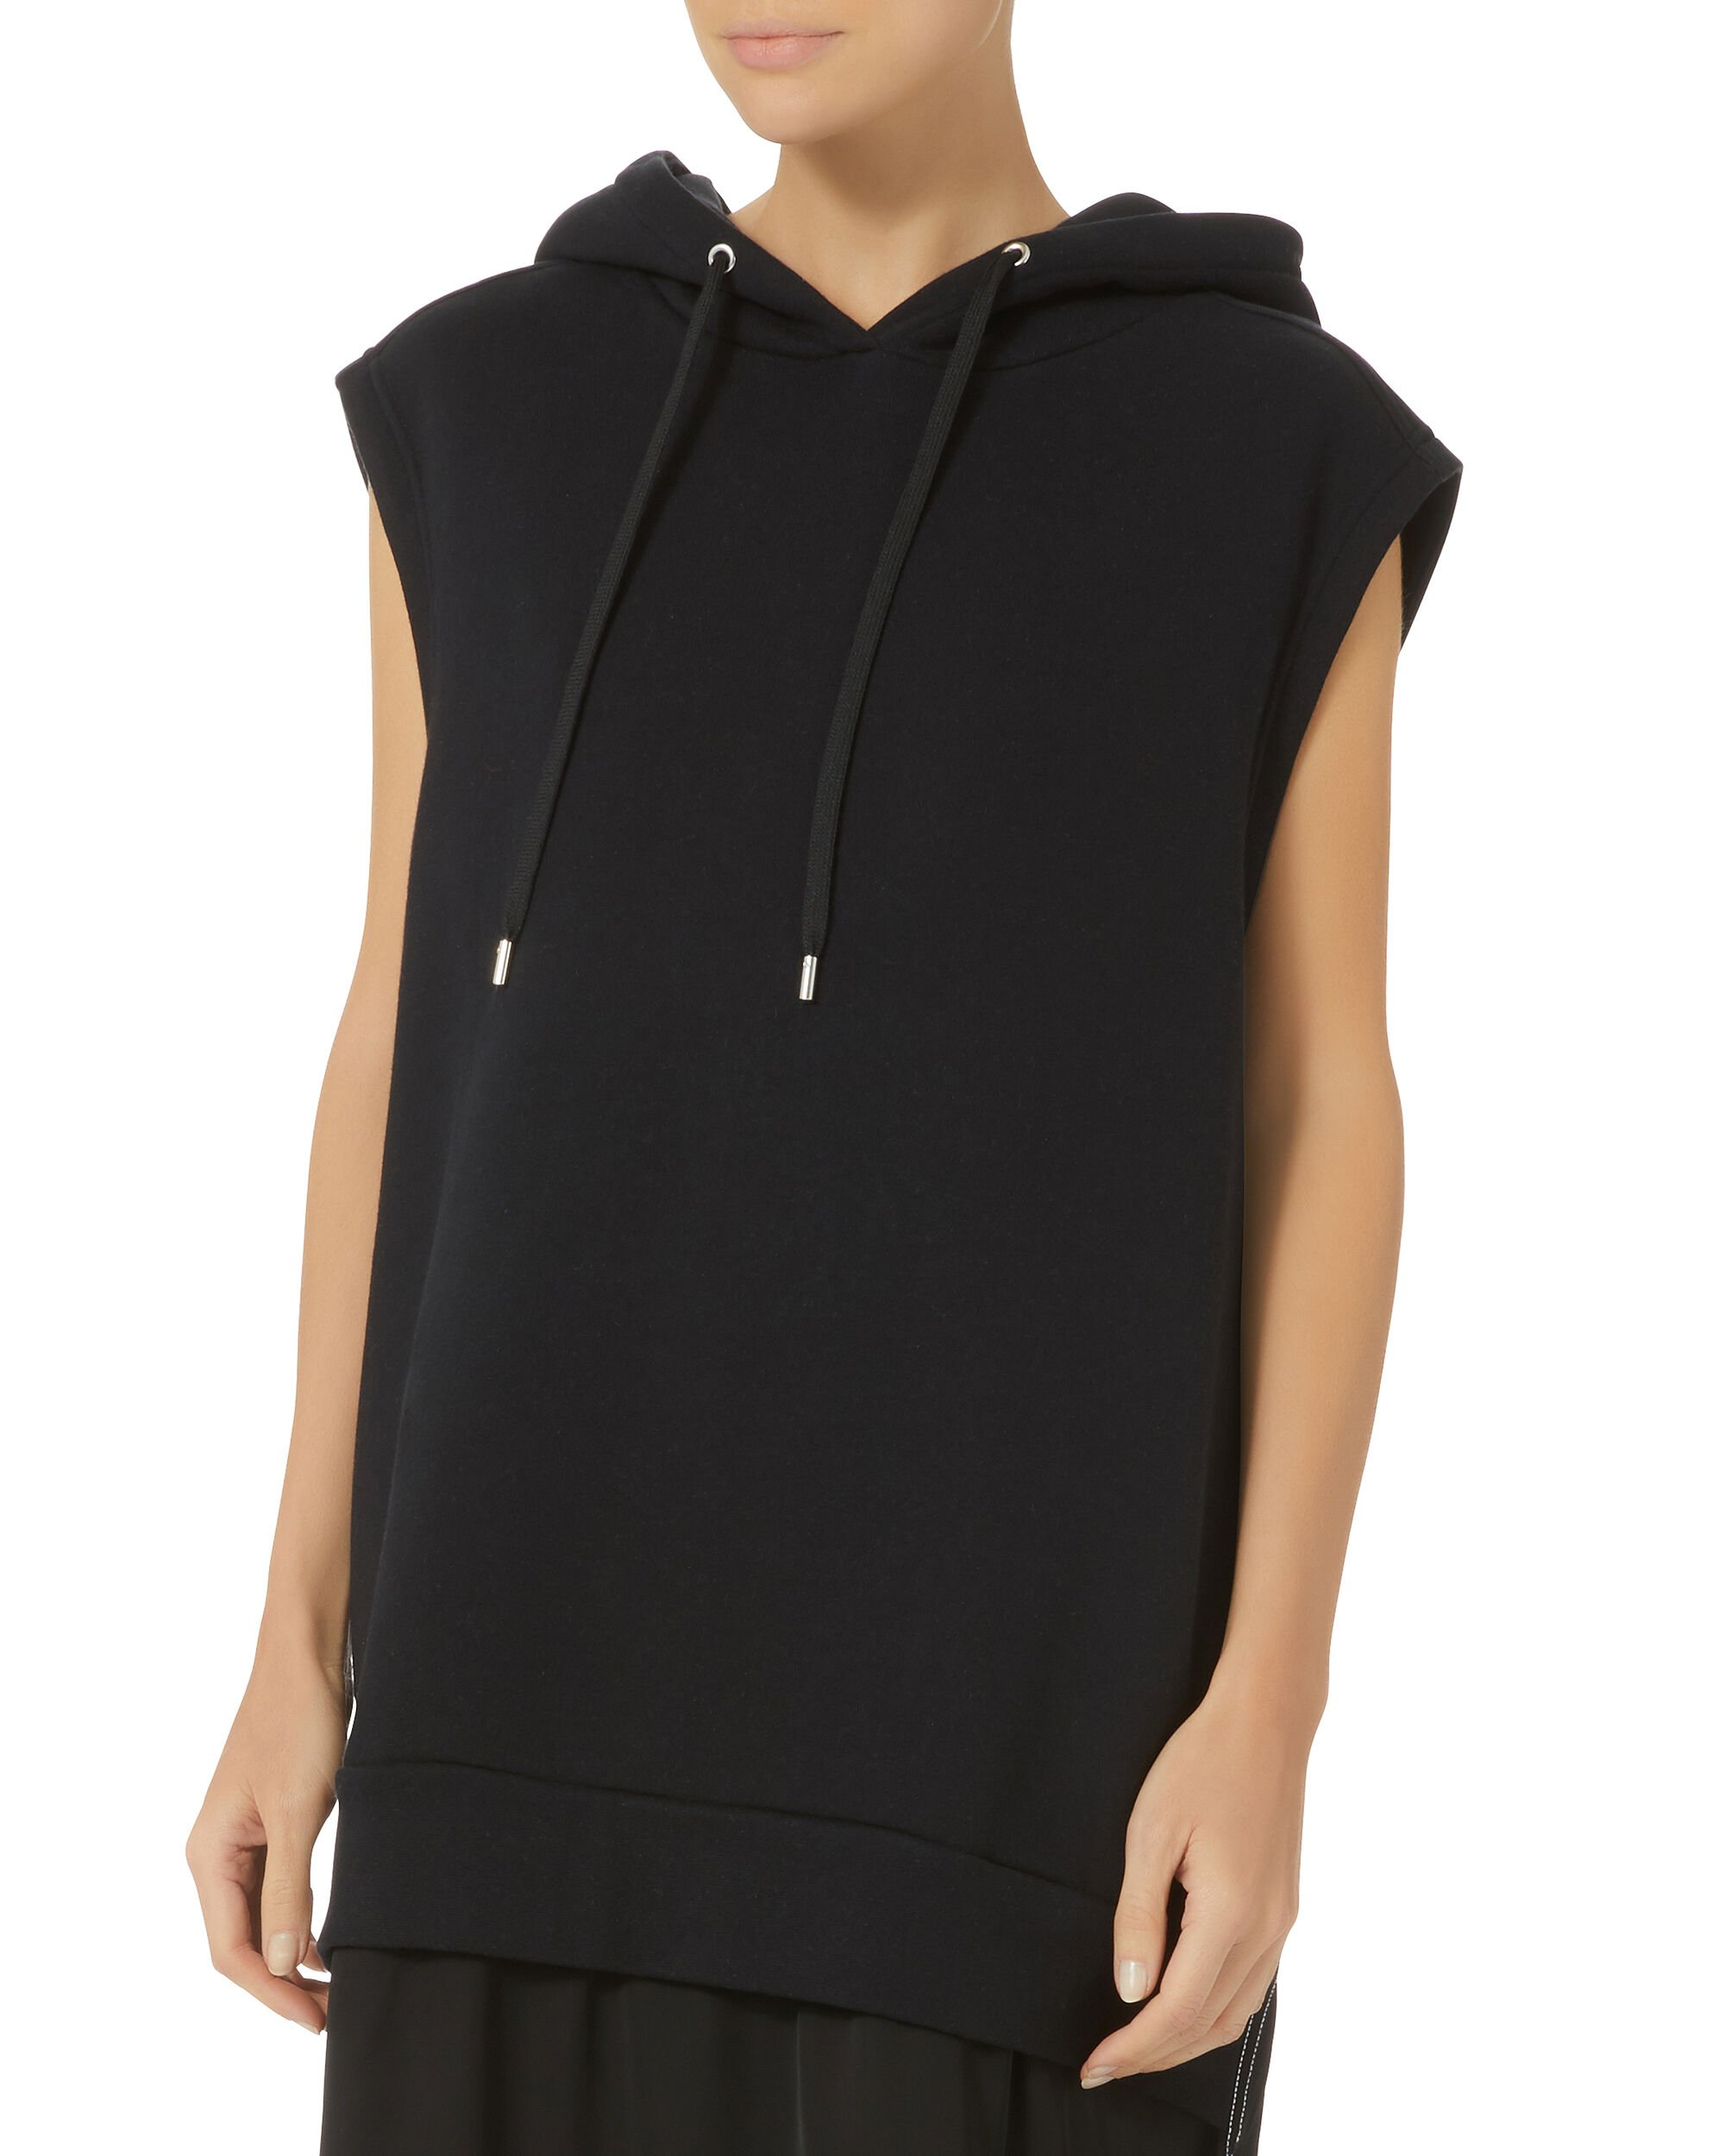 Allison Hoodie French Terry Dress, BLACK, hi-res